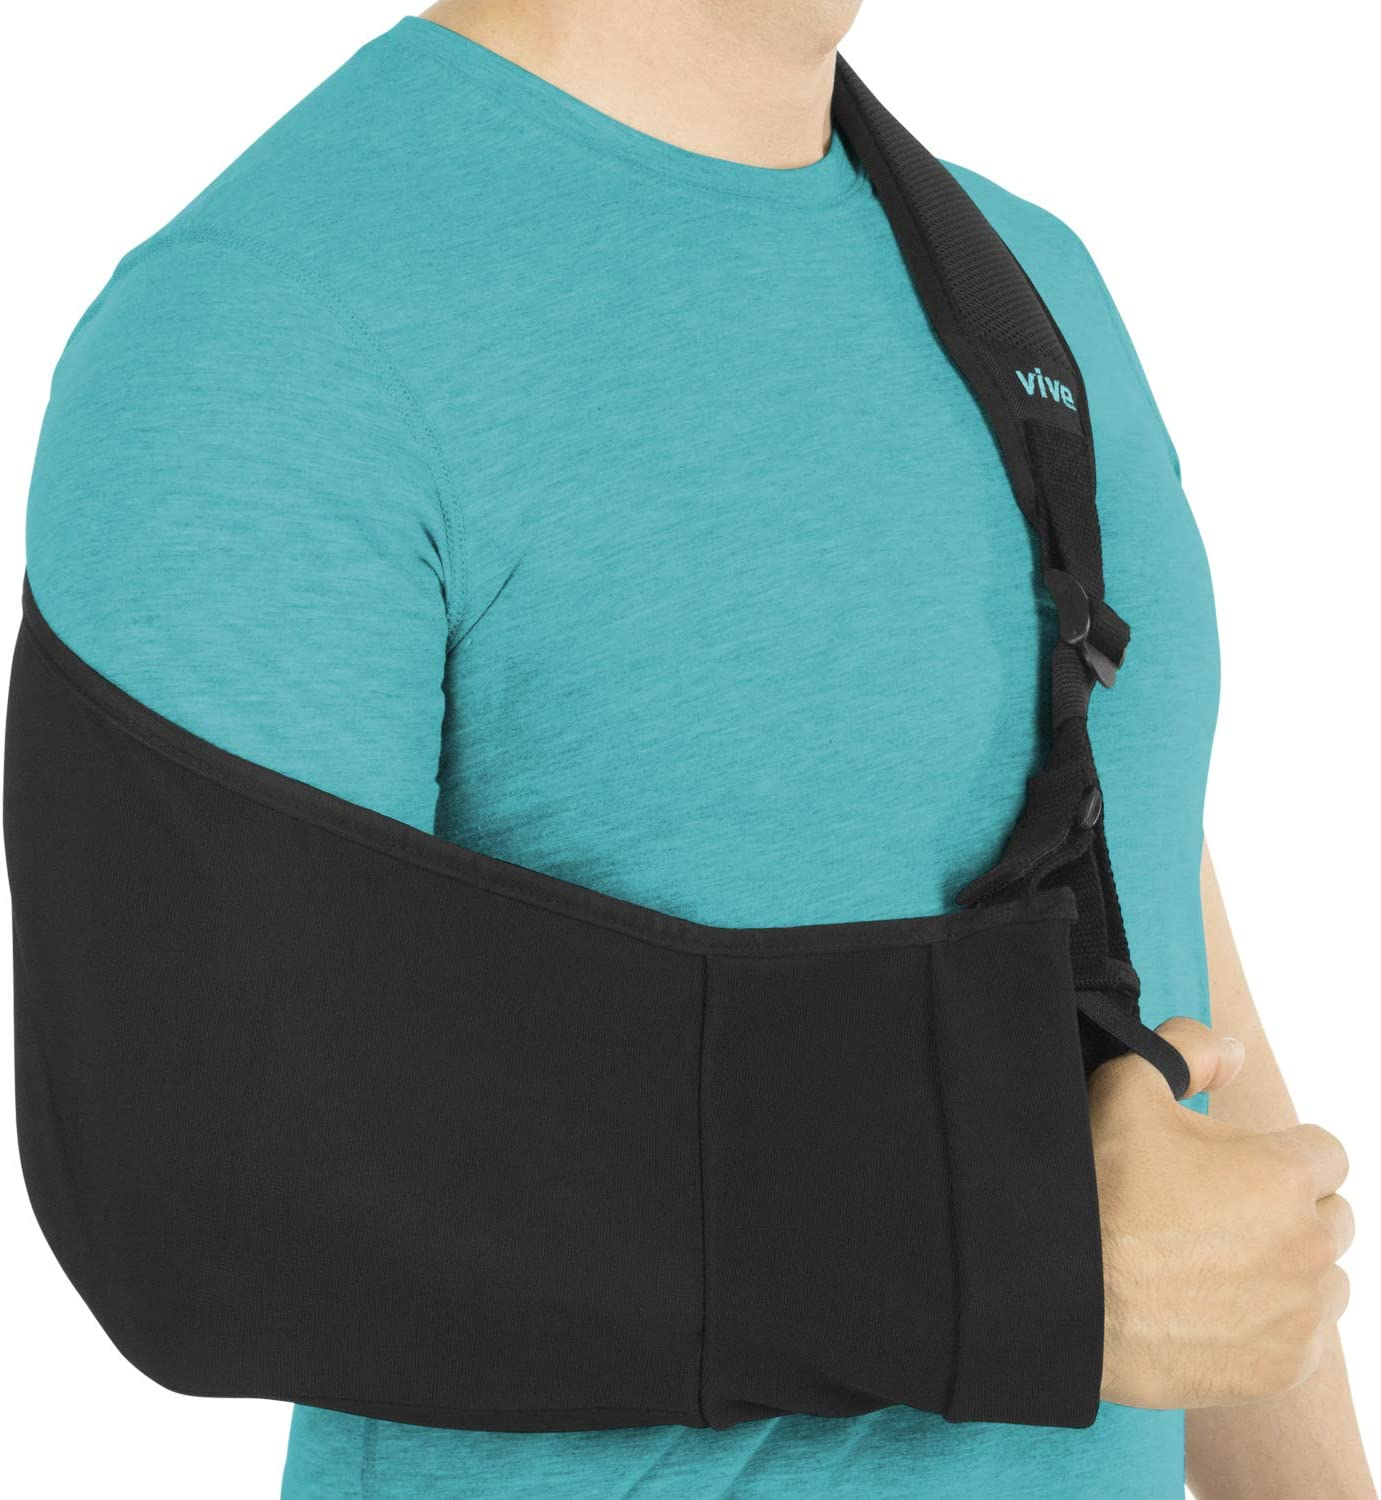 Vive Arm Sling - Medical Support Strap for Collar Bone, Rotator Cuff & Shoulder Injury - Adjustable, Breathable and Lightweight Immobilizer - Padded for Left, Right - for Elbow Dislocation and Sprain: Health & Personal Care